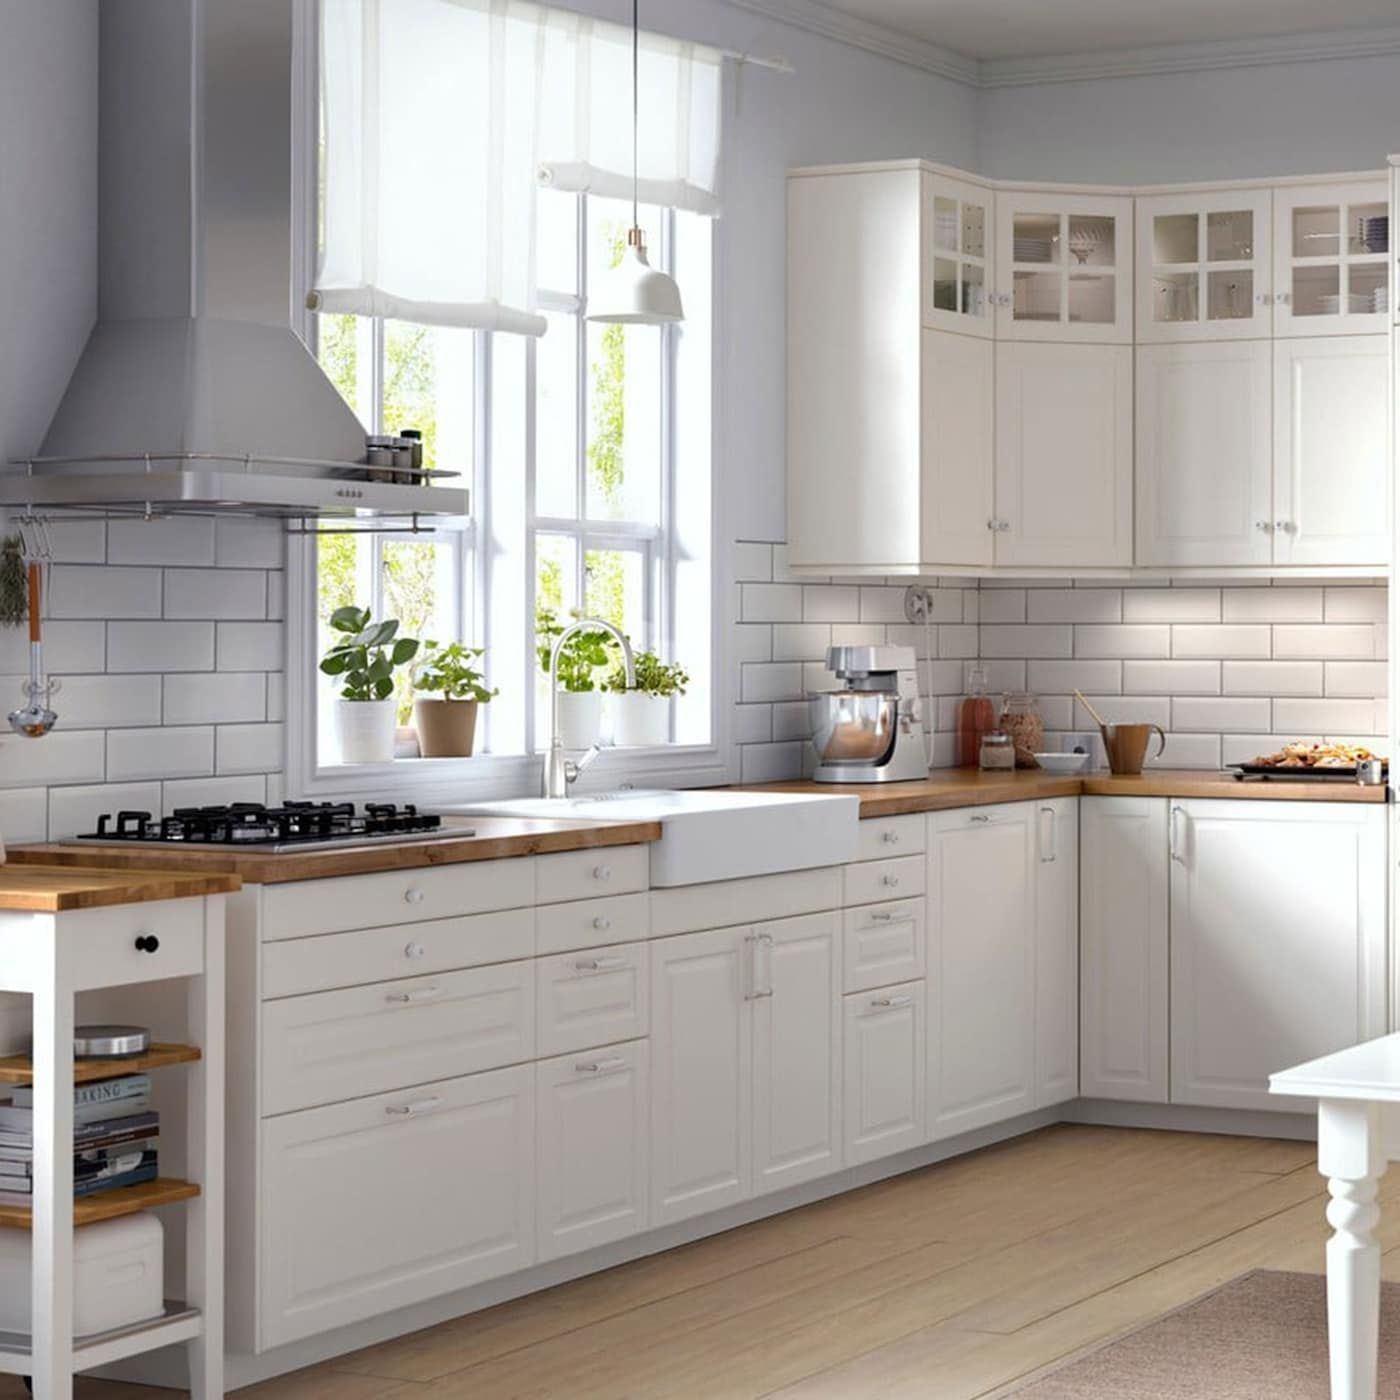 Kitchen gallery in 2020 | Ikea kitchen design, Kitchen ...